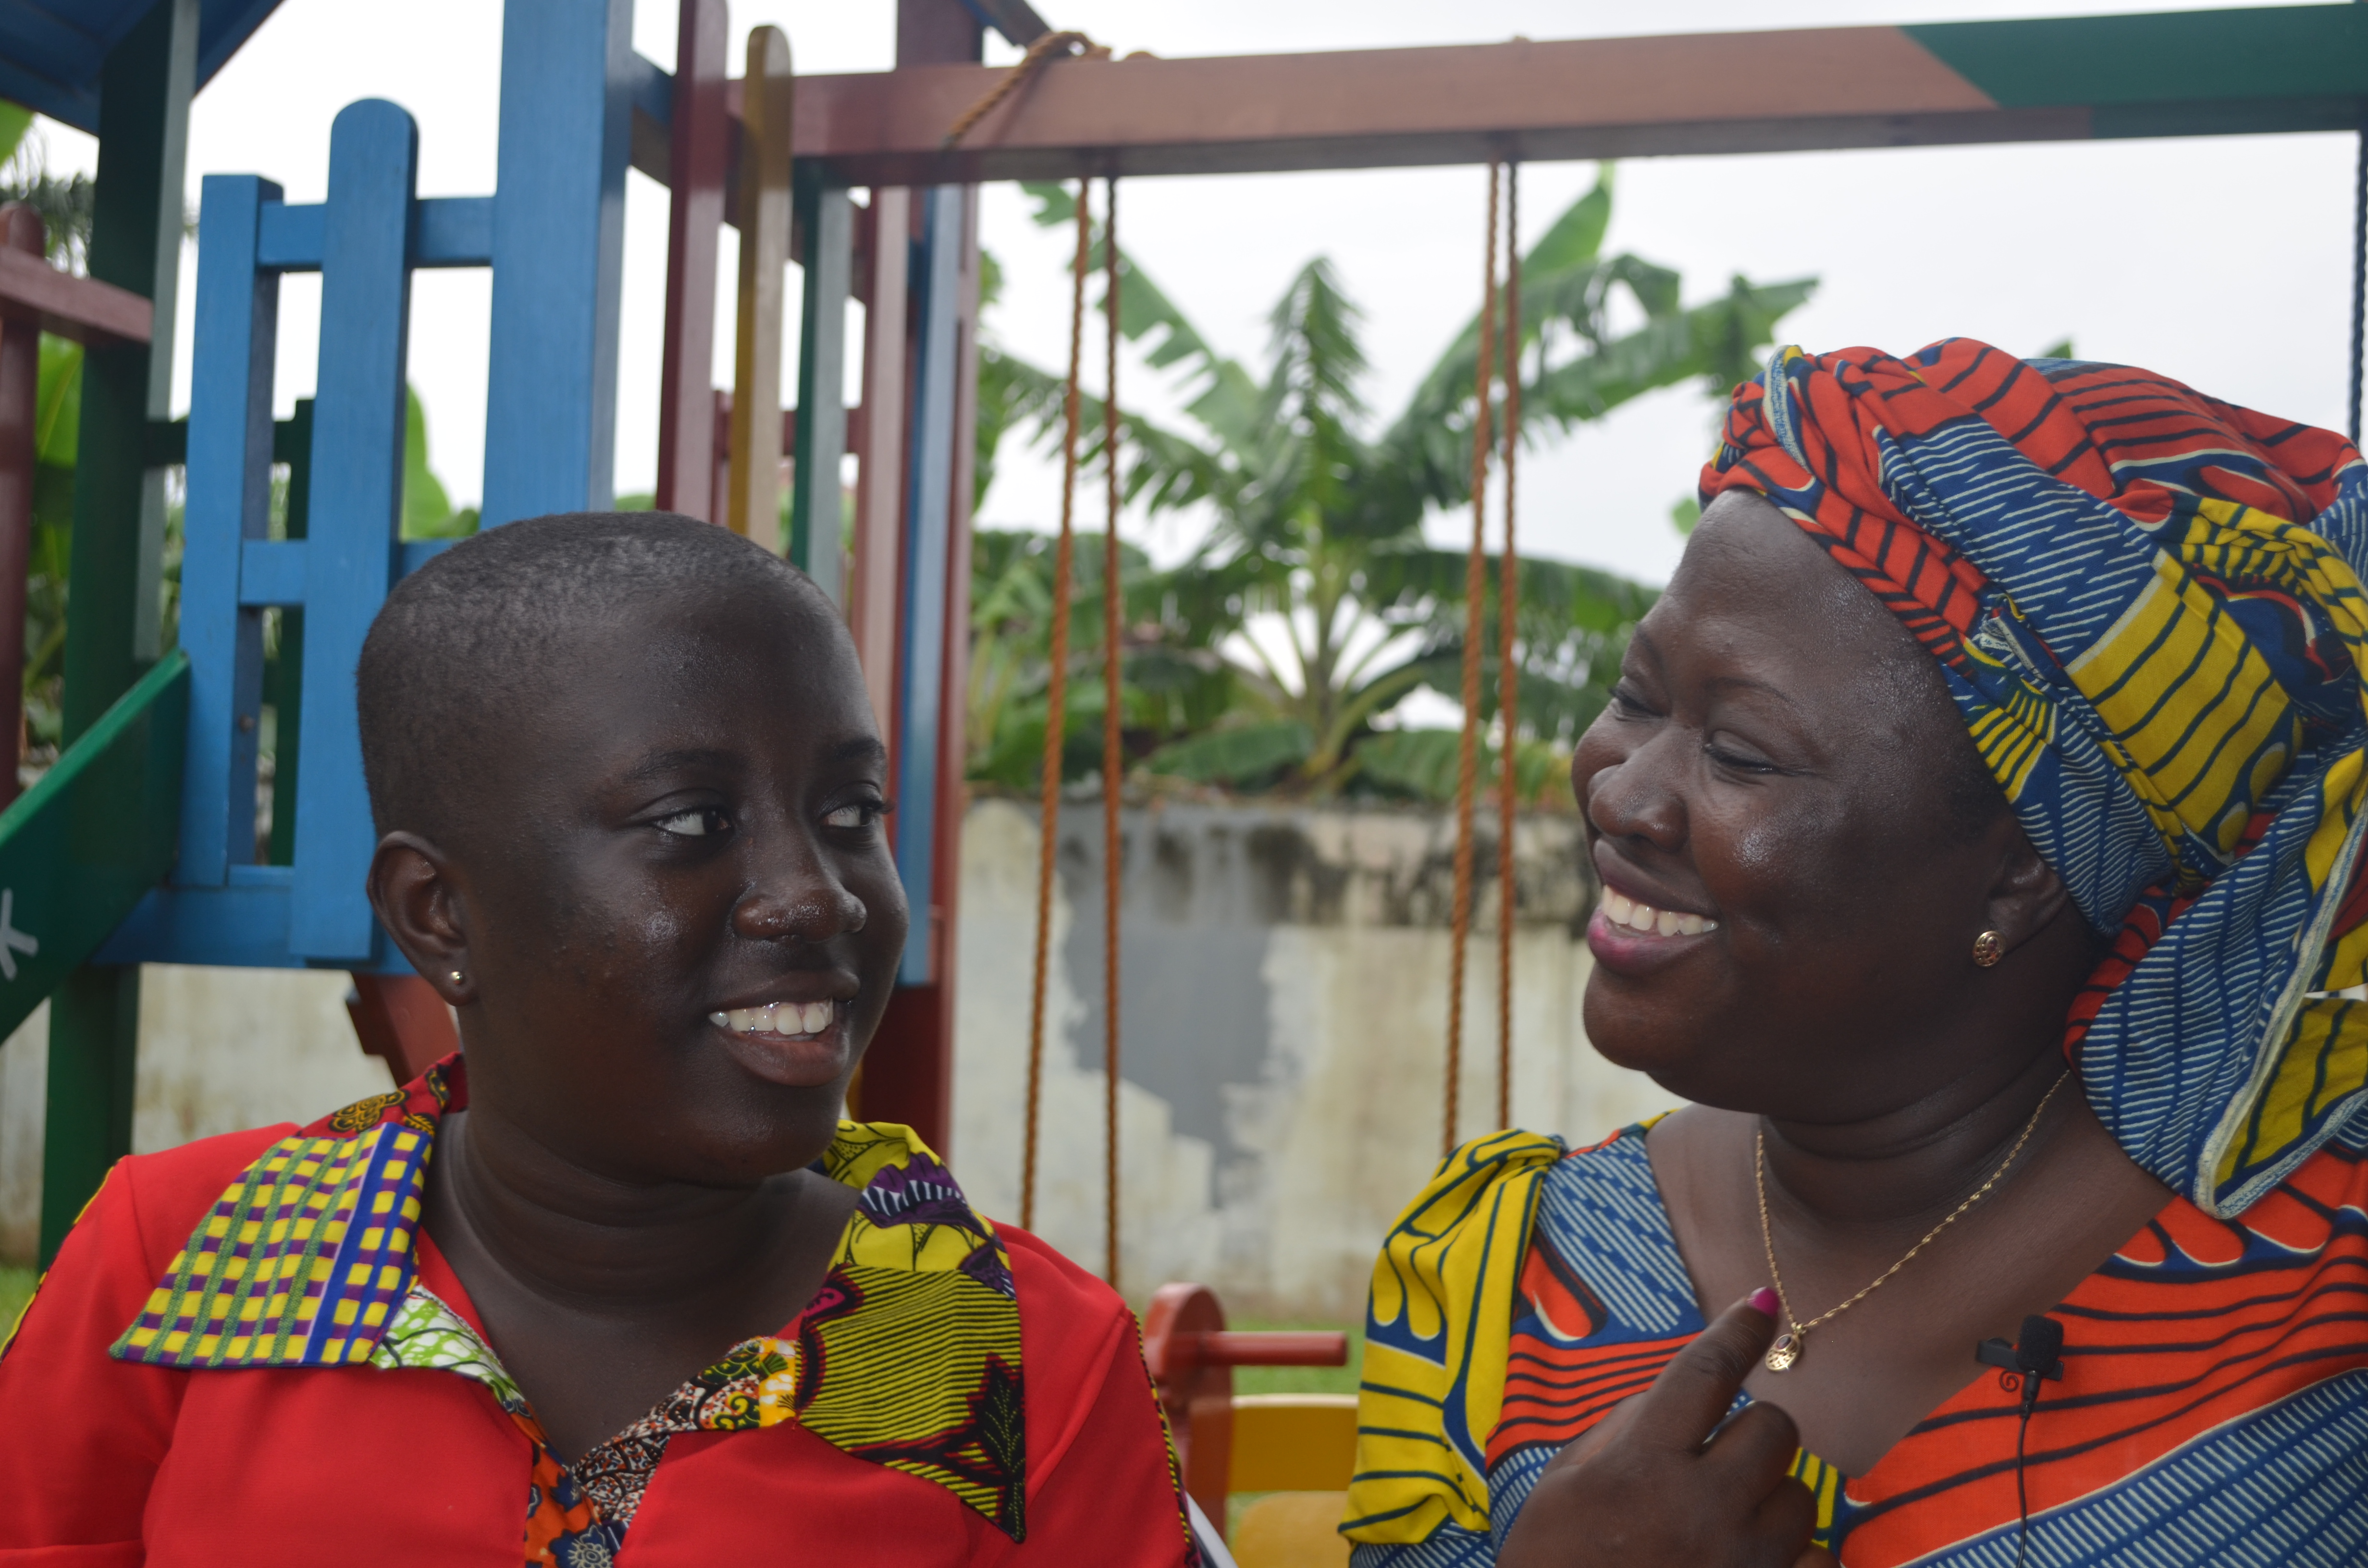 Renata and her mother share a smile of understanding.